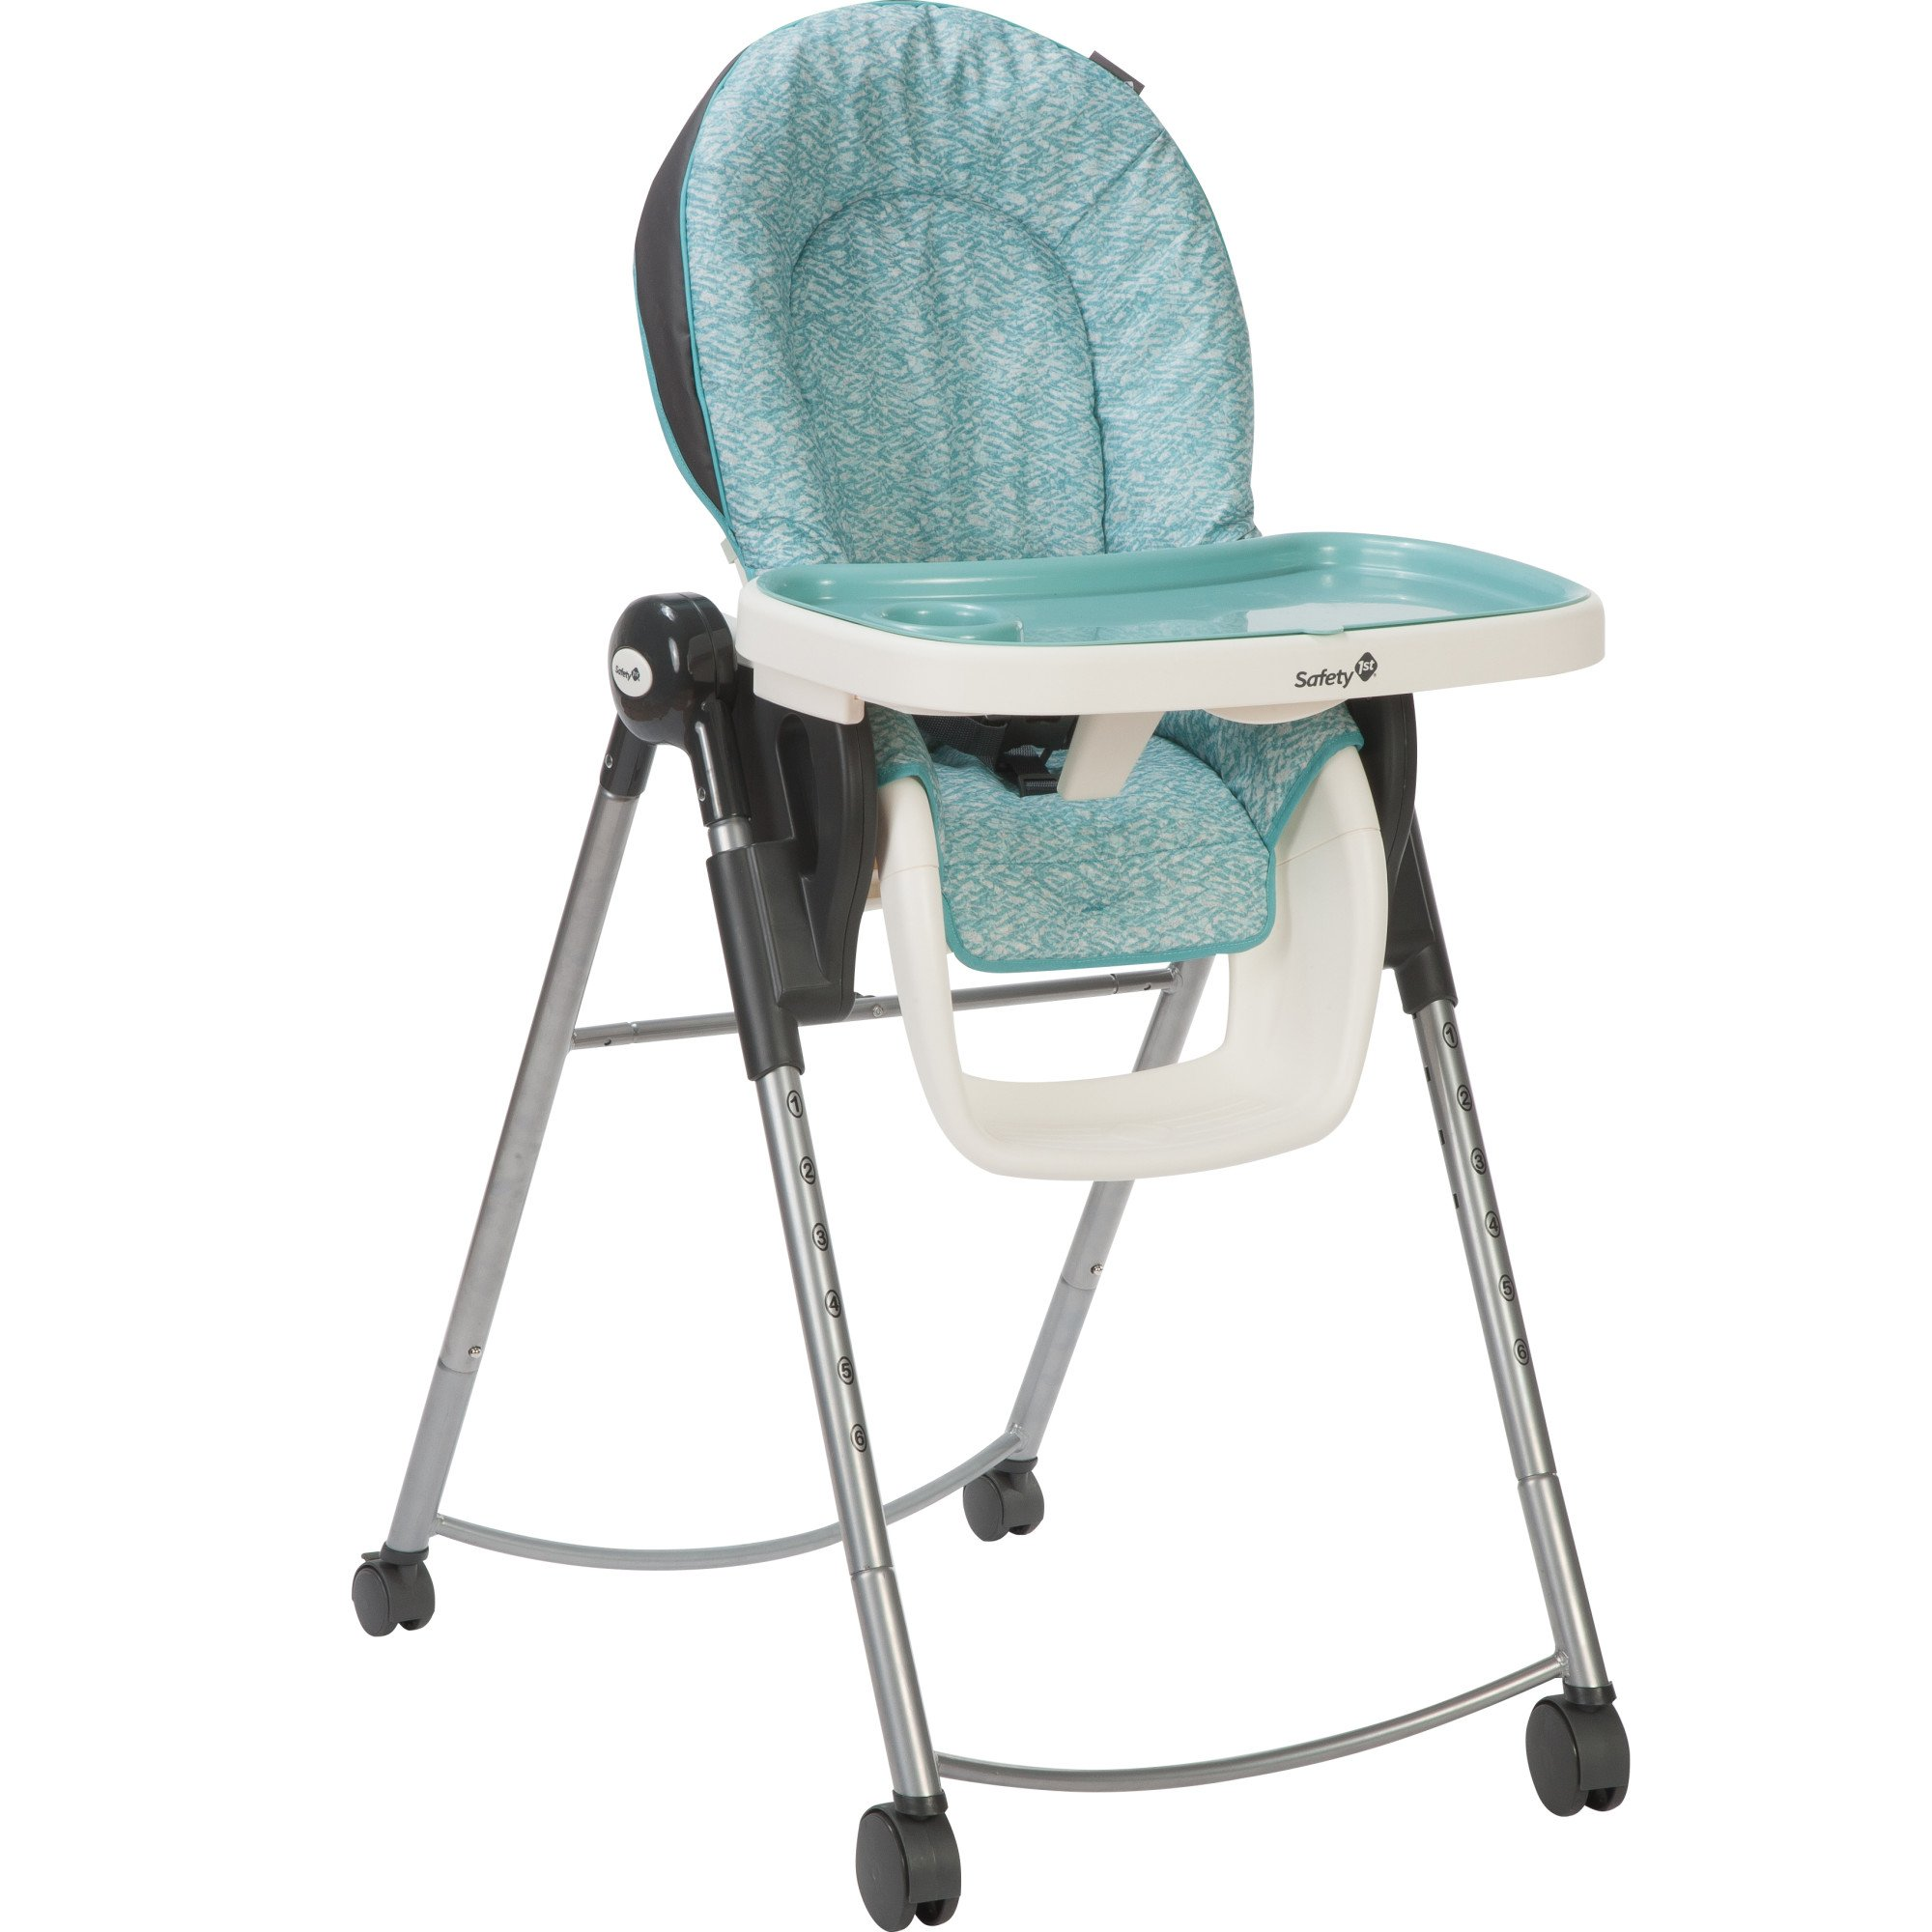 Amazon.com : Safety 1st Adaptable High Chair, Sorbet : Baby